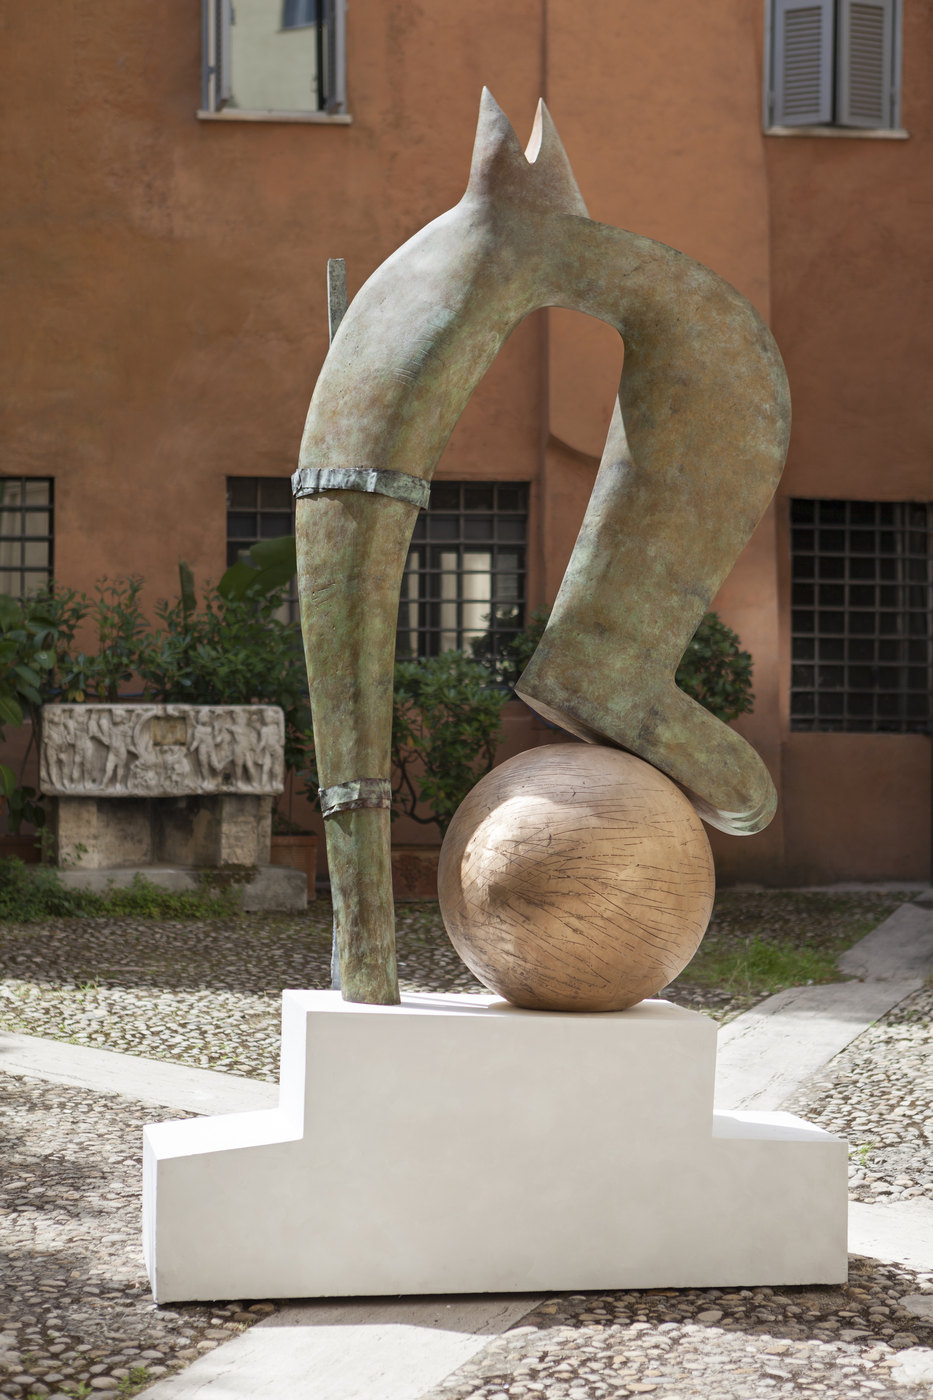 13. Camille Henrot, Dropping the Ball. Bronze, wood, plaster, 2016